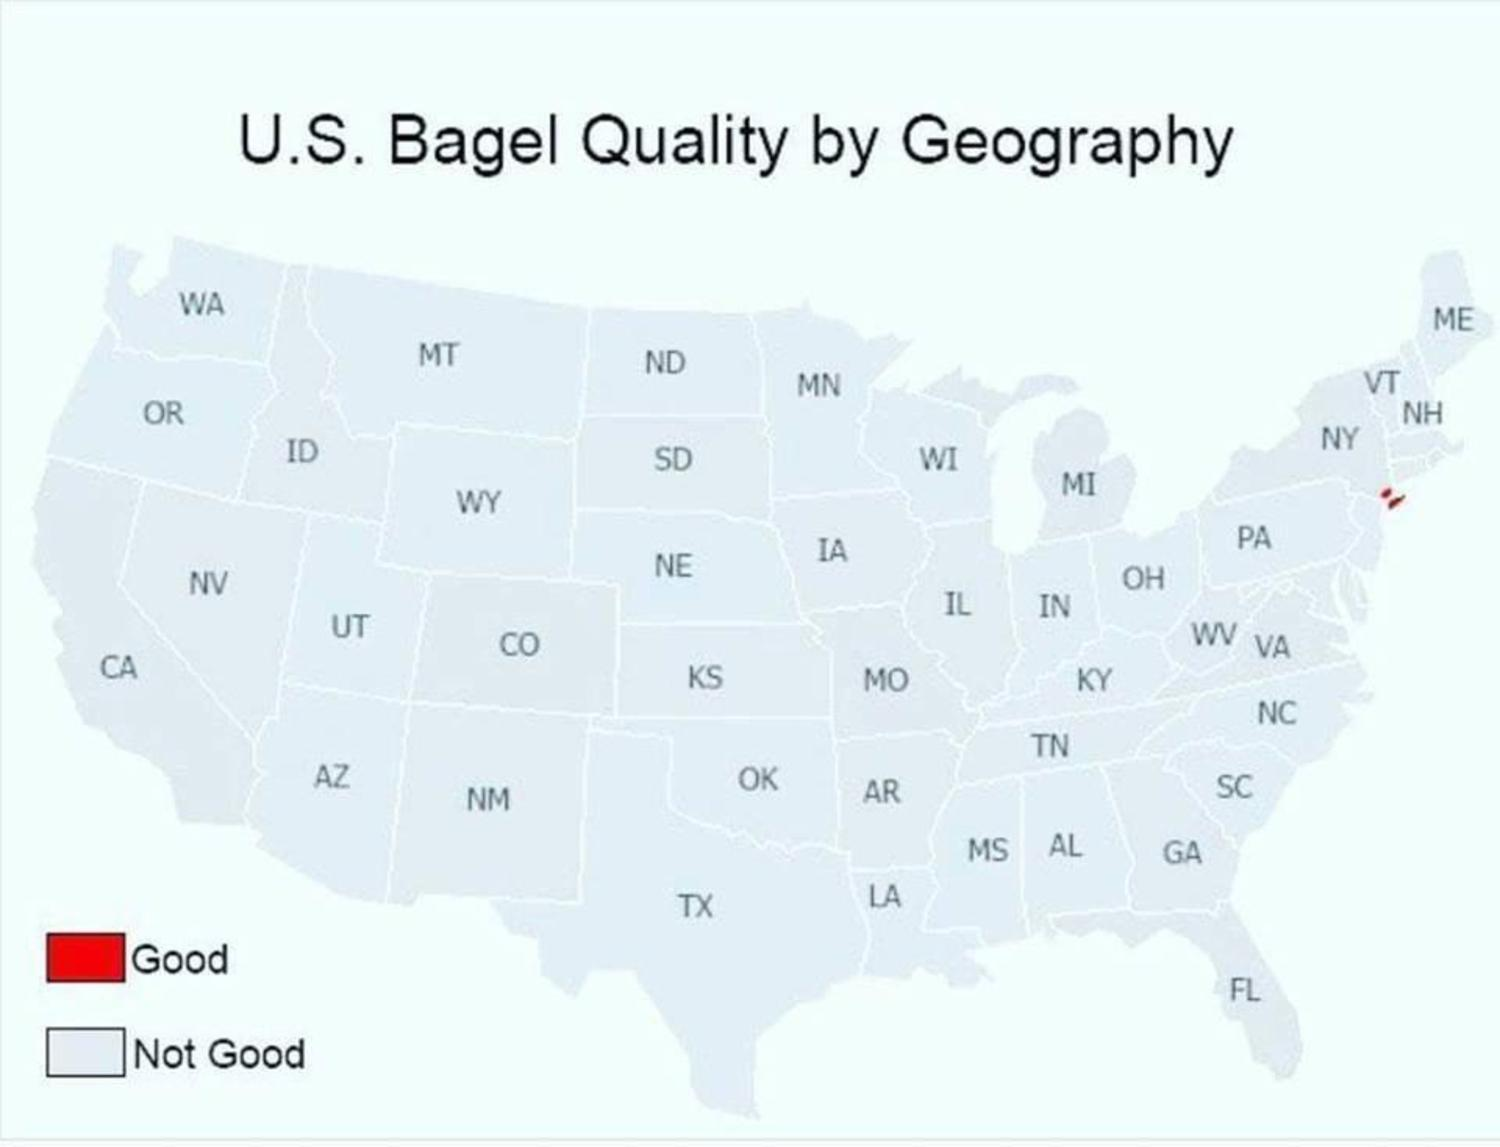 U.S. Bagel Quality by Geography